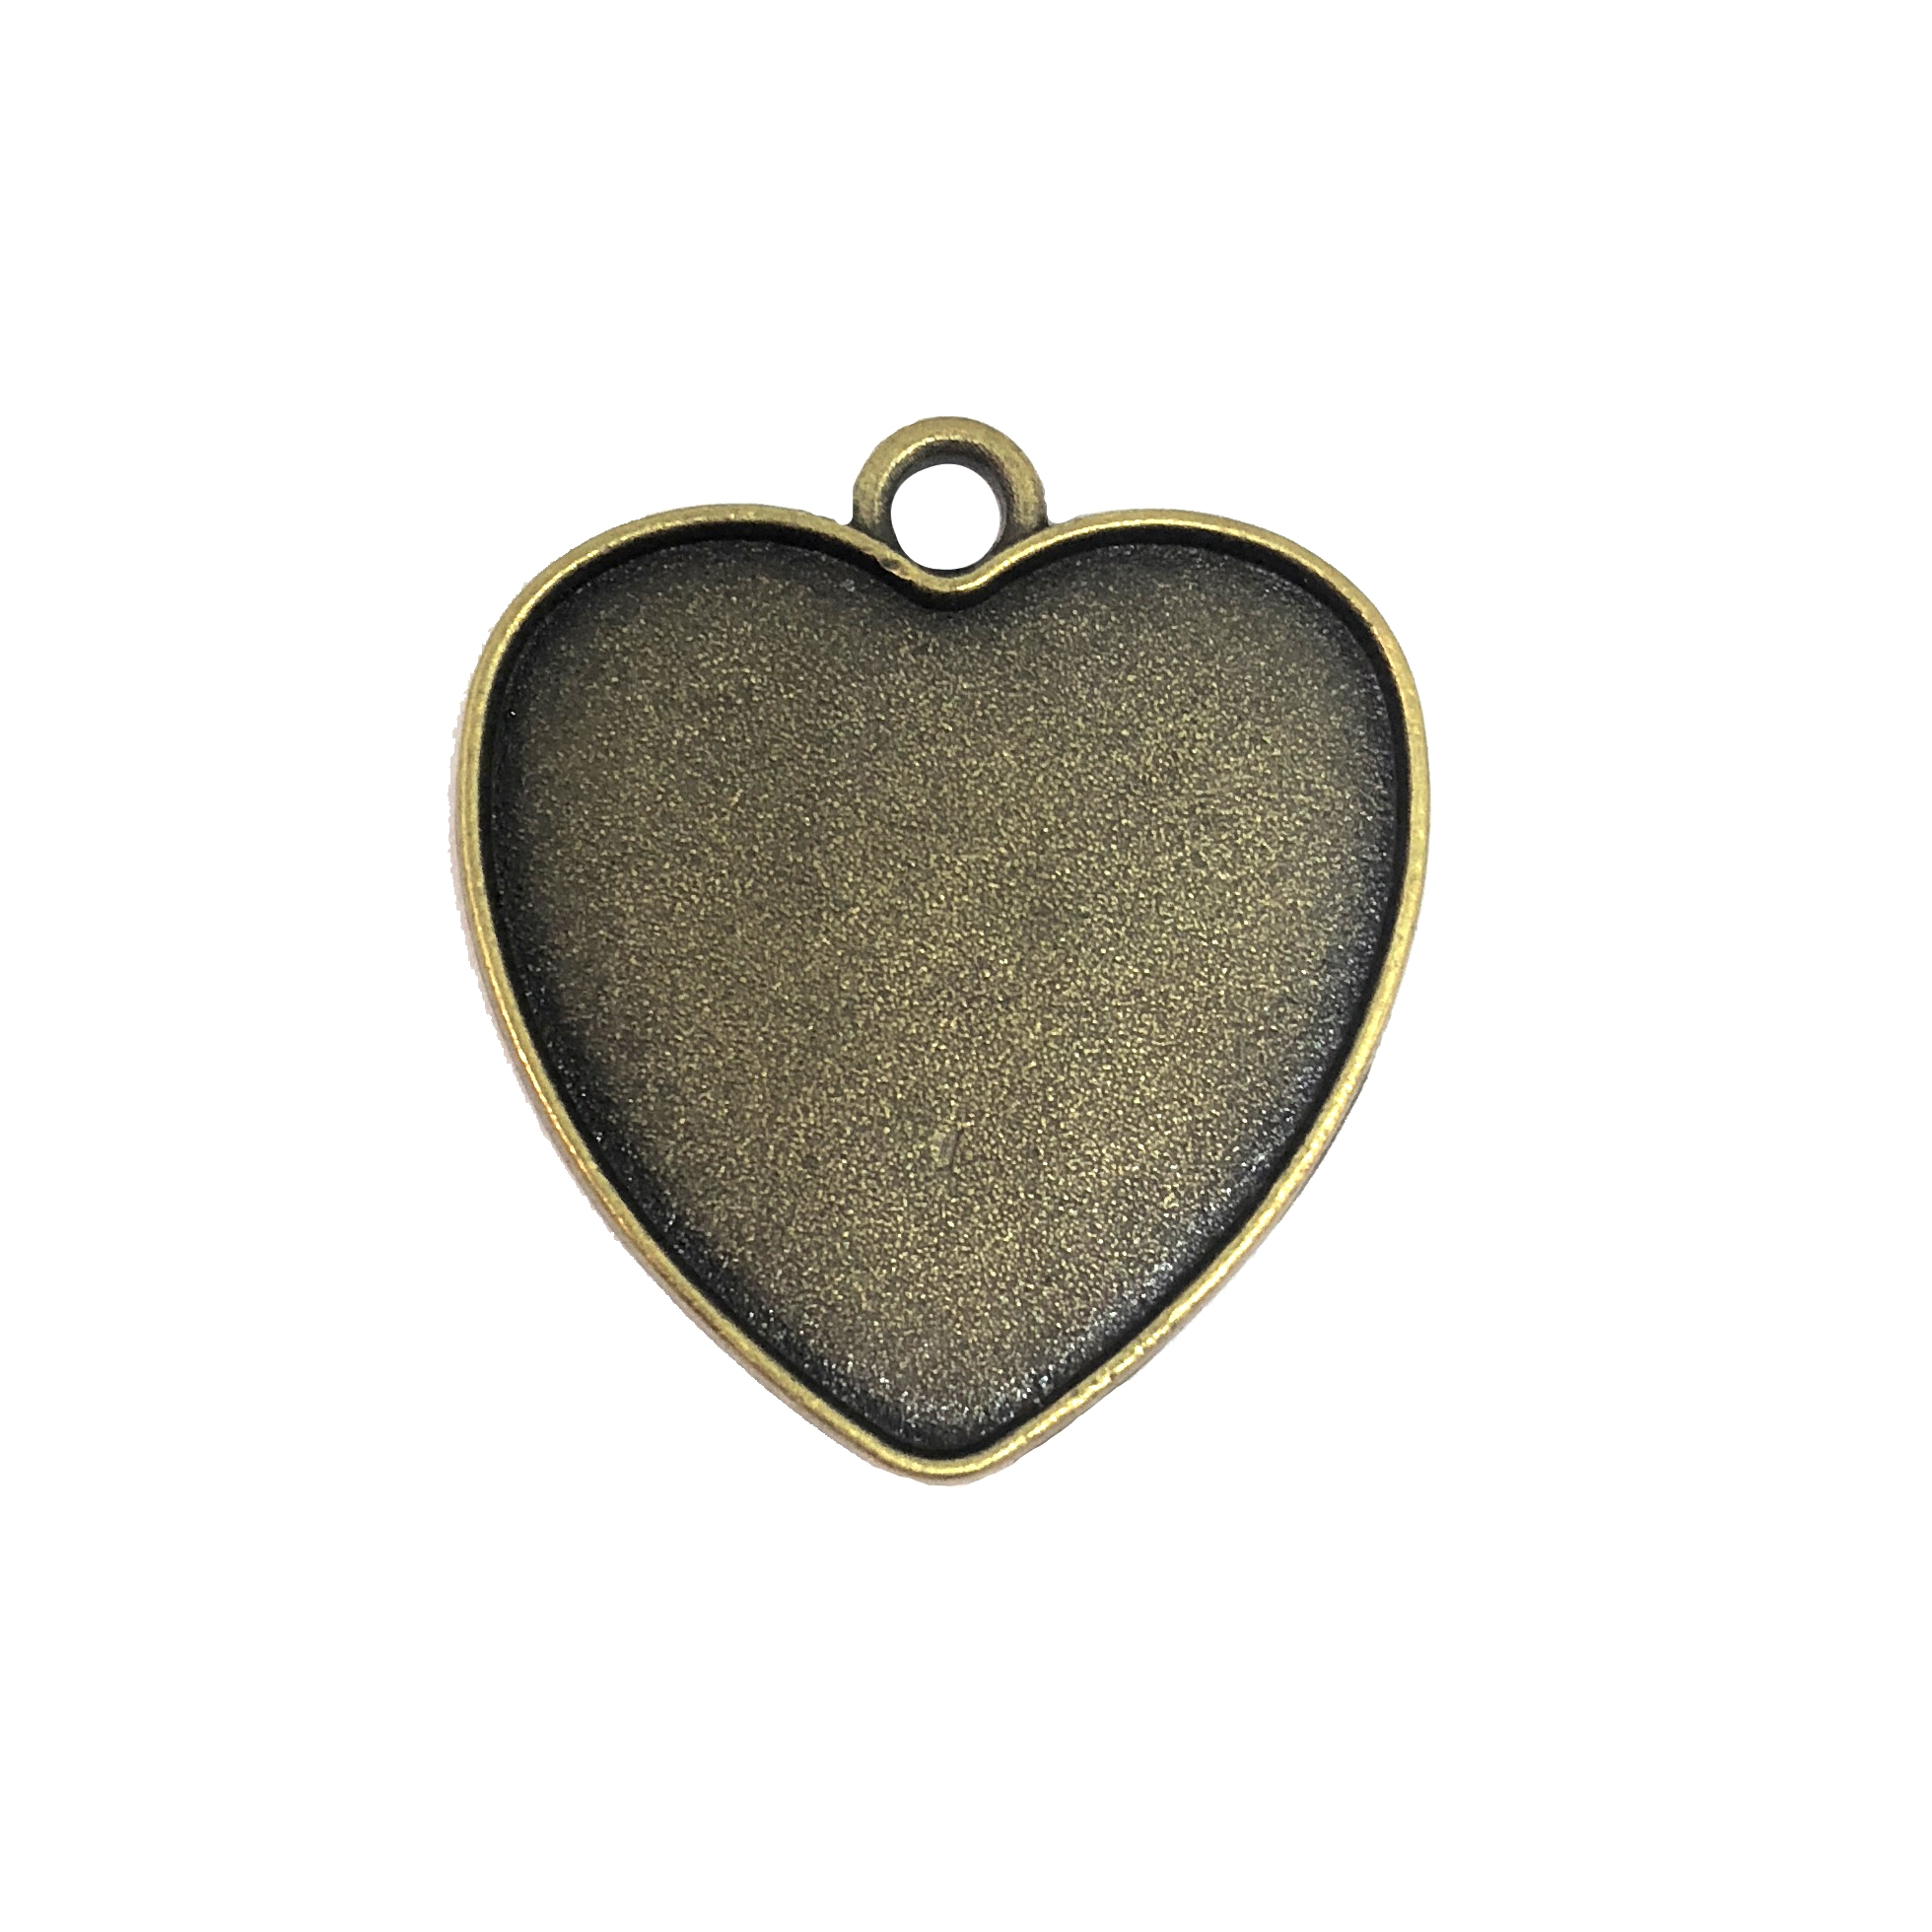 Heart Pendant, Heart Charm, 08299, cast zinc, bronze finish, 30x27mm, vintage jewelry supplies, heart,  jewelry findings, jewelry making, vintage supplies, jewelry supplies, charms, B'sue Boutiques